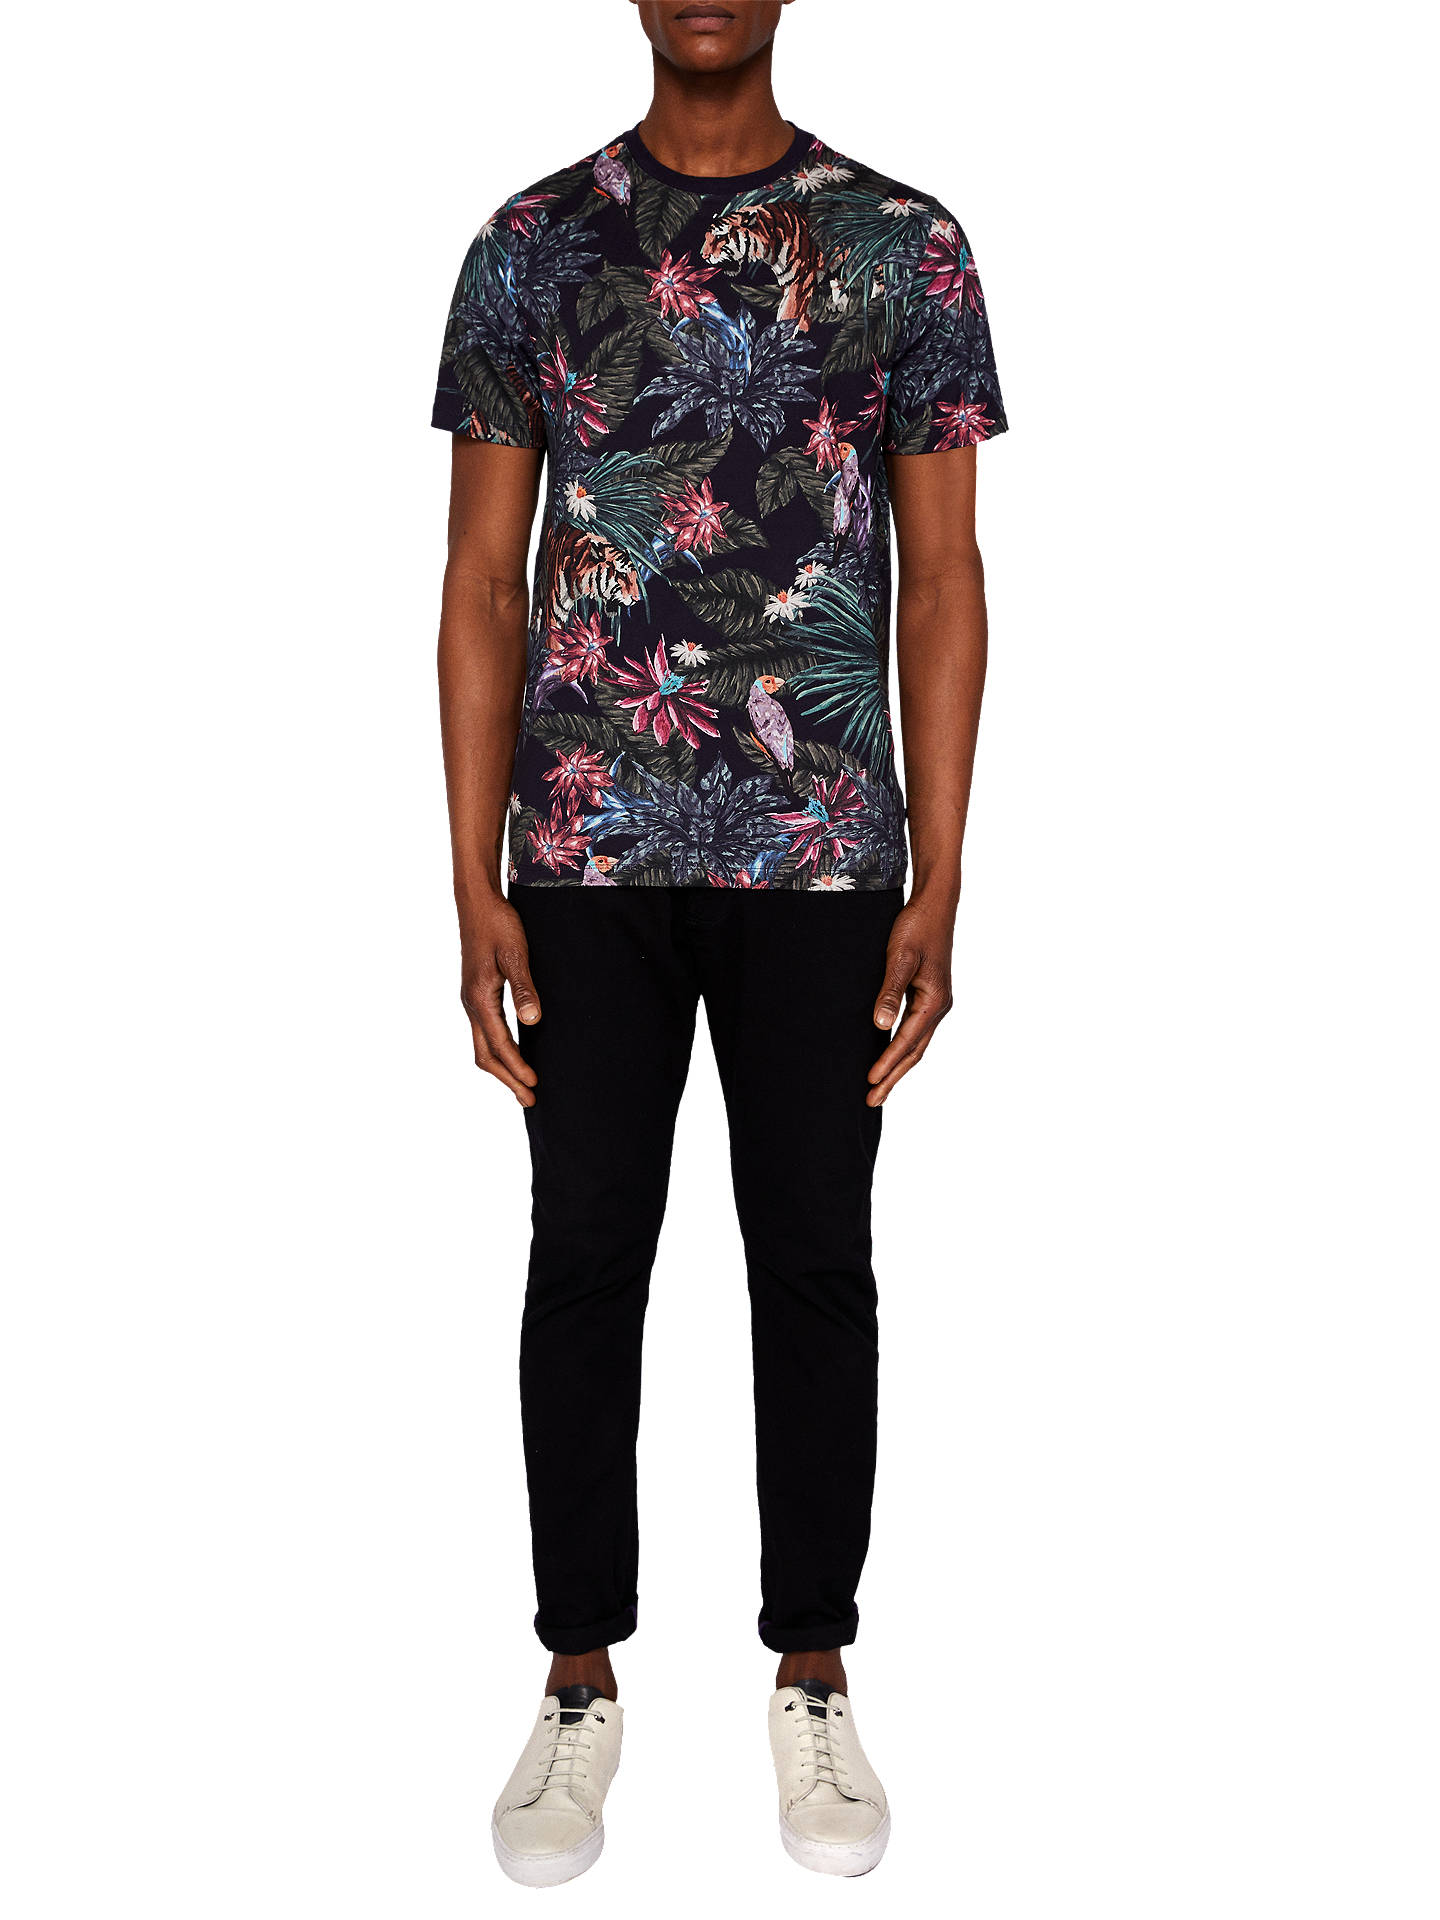 BuyTed Baker Minte Tiger Print Cotton T-Shirt, Navy, 3 Online at johnlewis.com